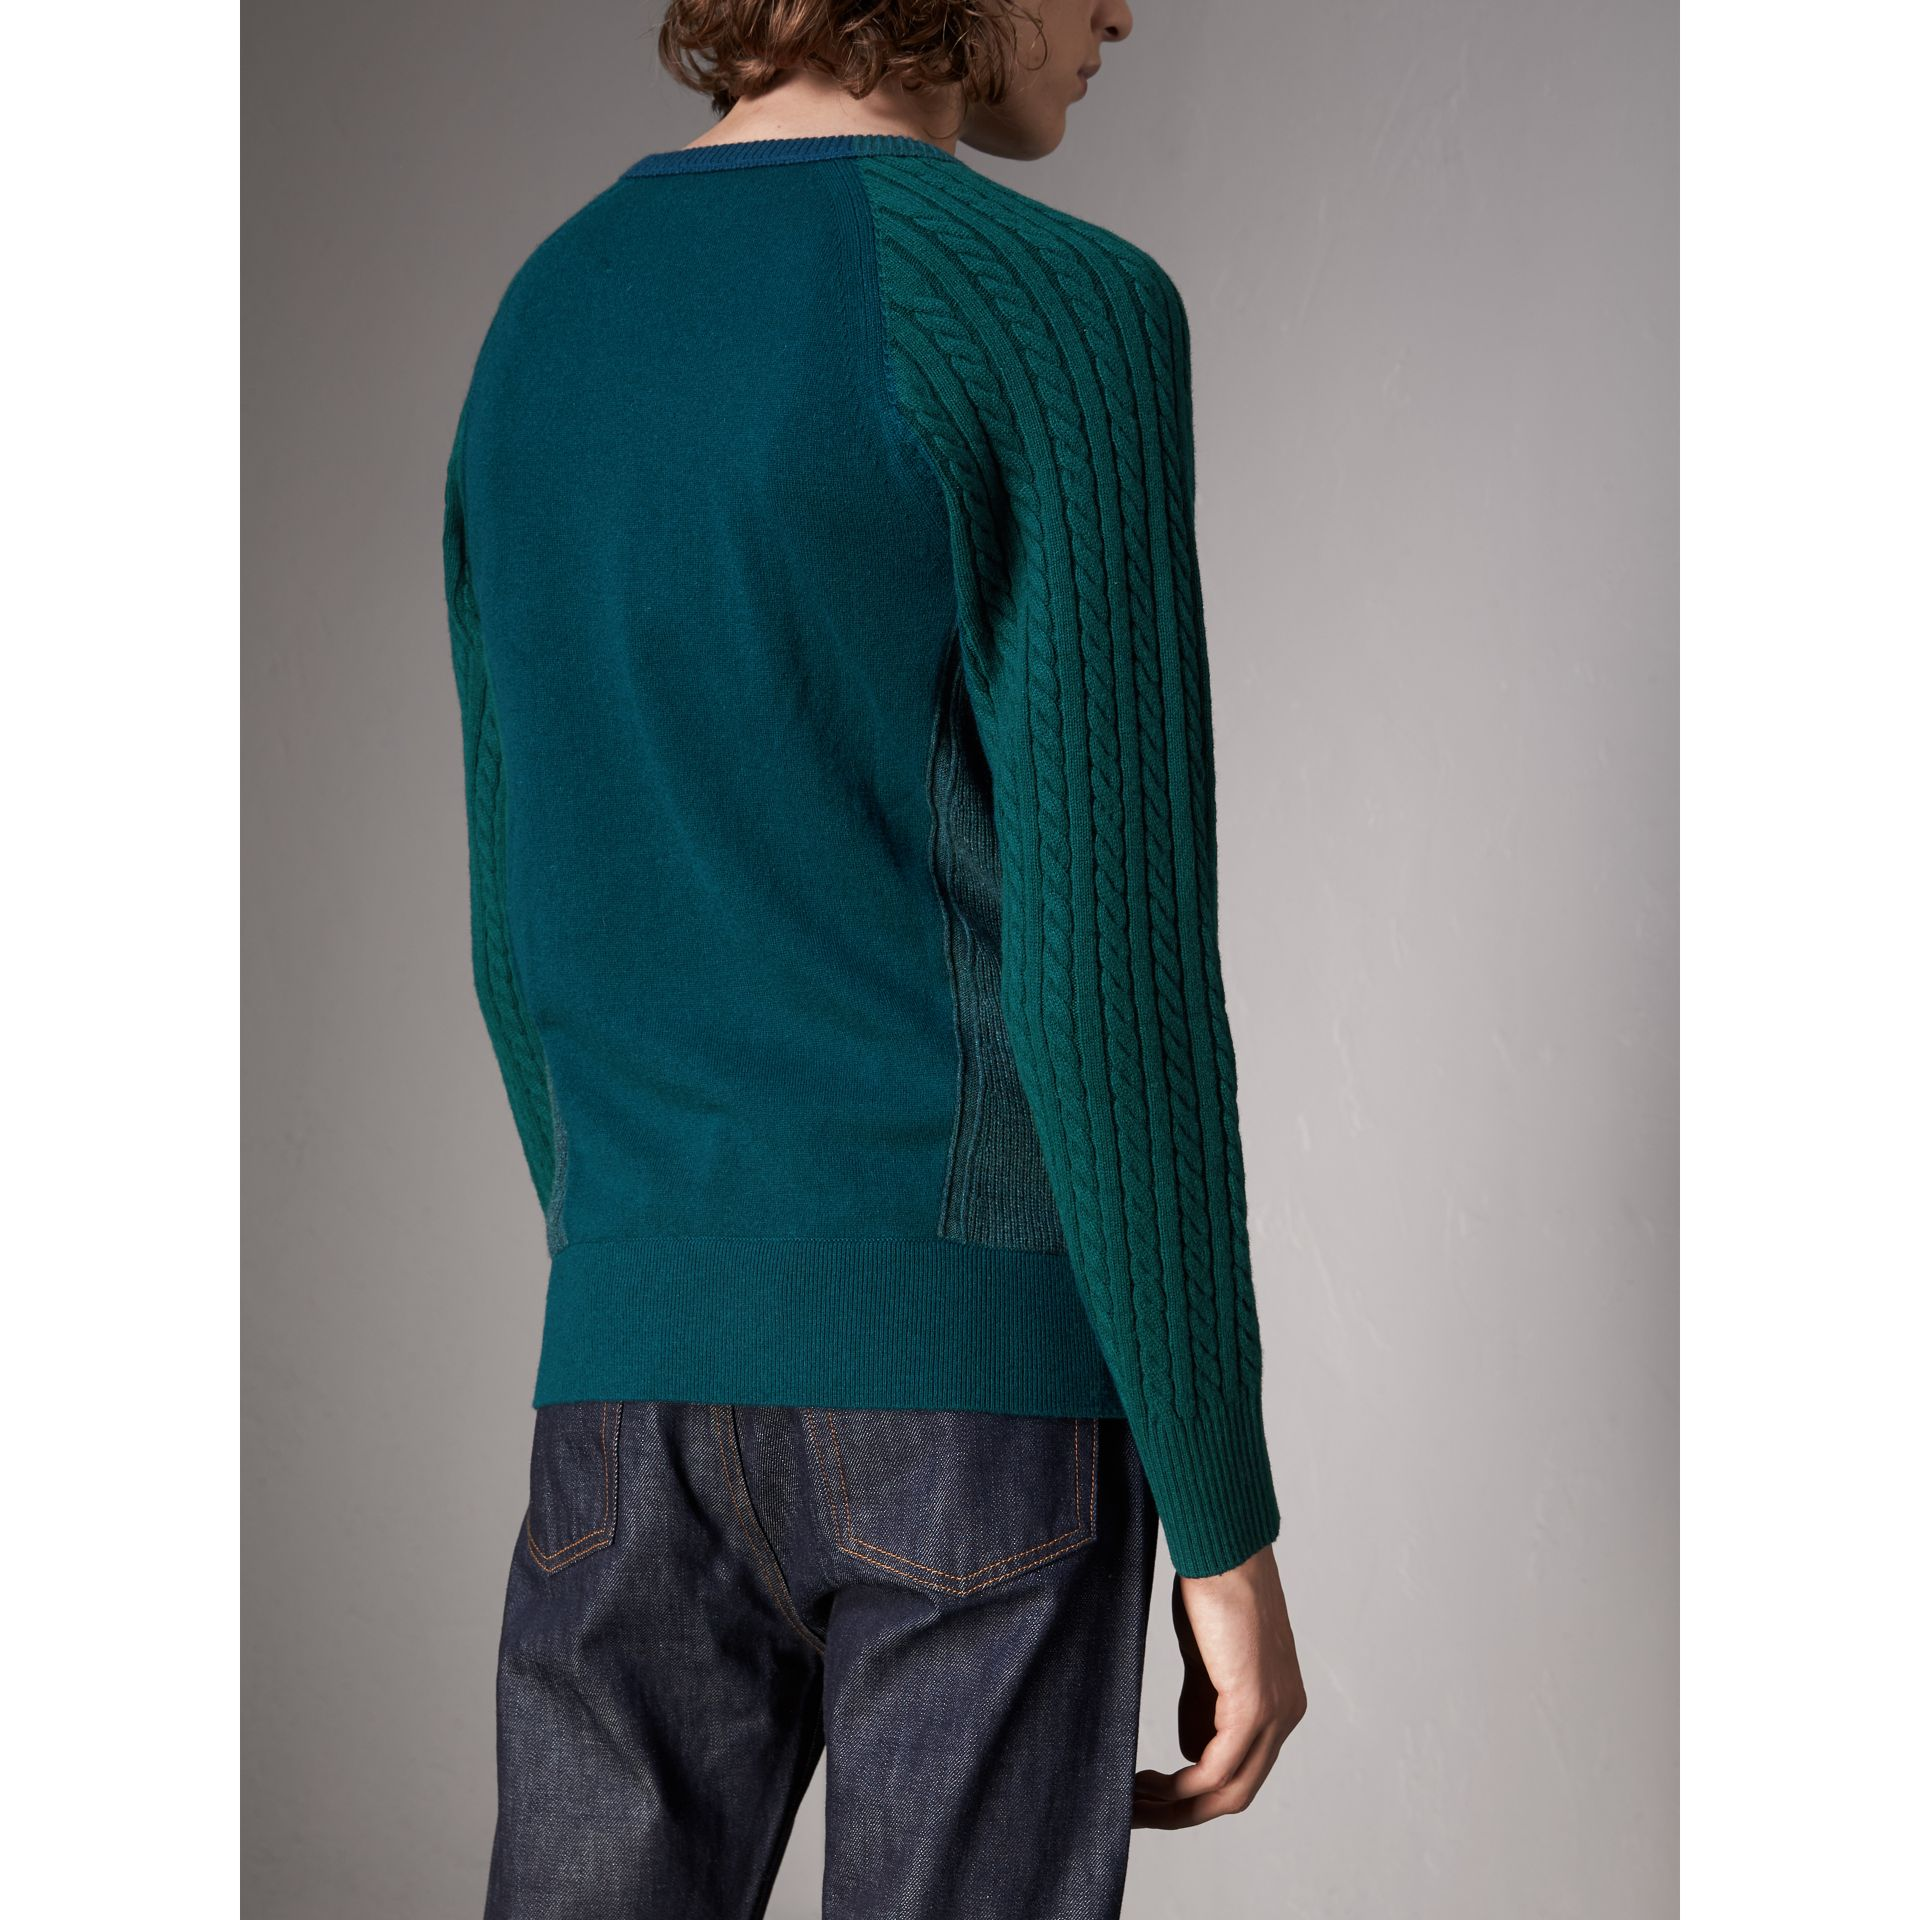 Two-tone Cable Knit Cashmere Sweater in Dark Teal - Men | Burberry Singapore - gallery image 3